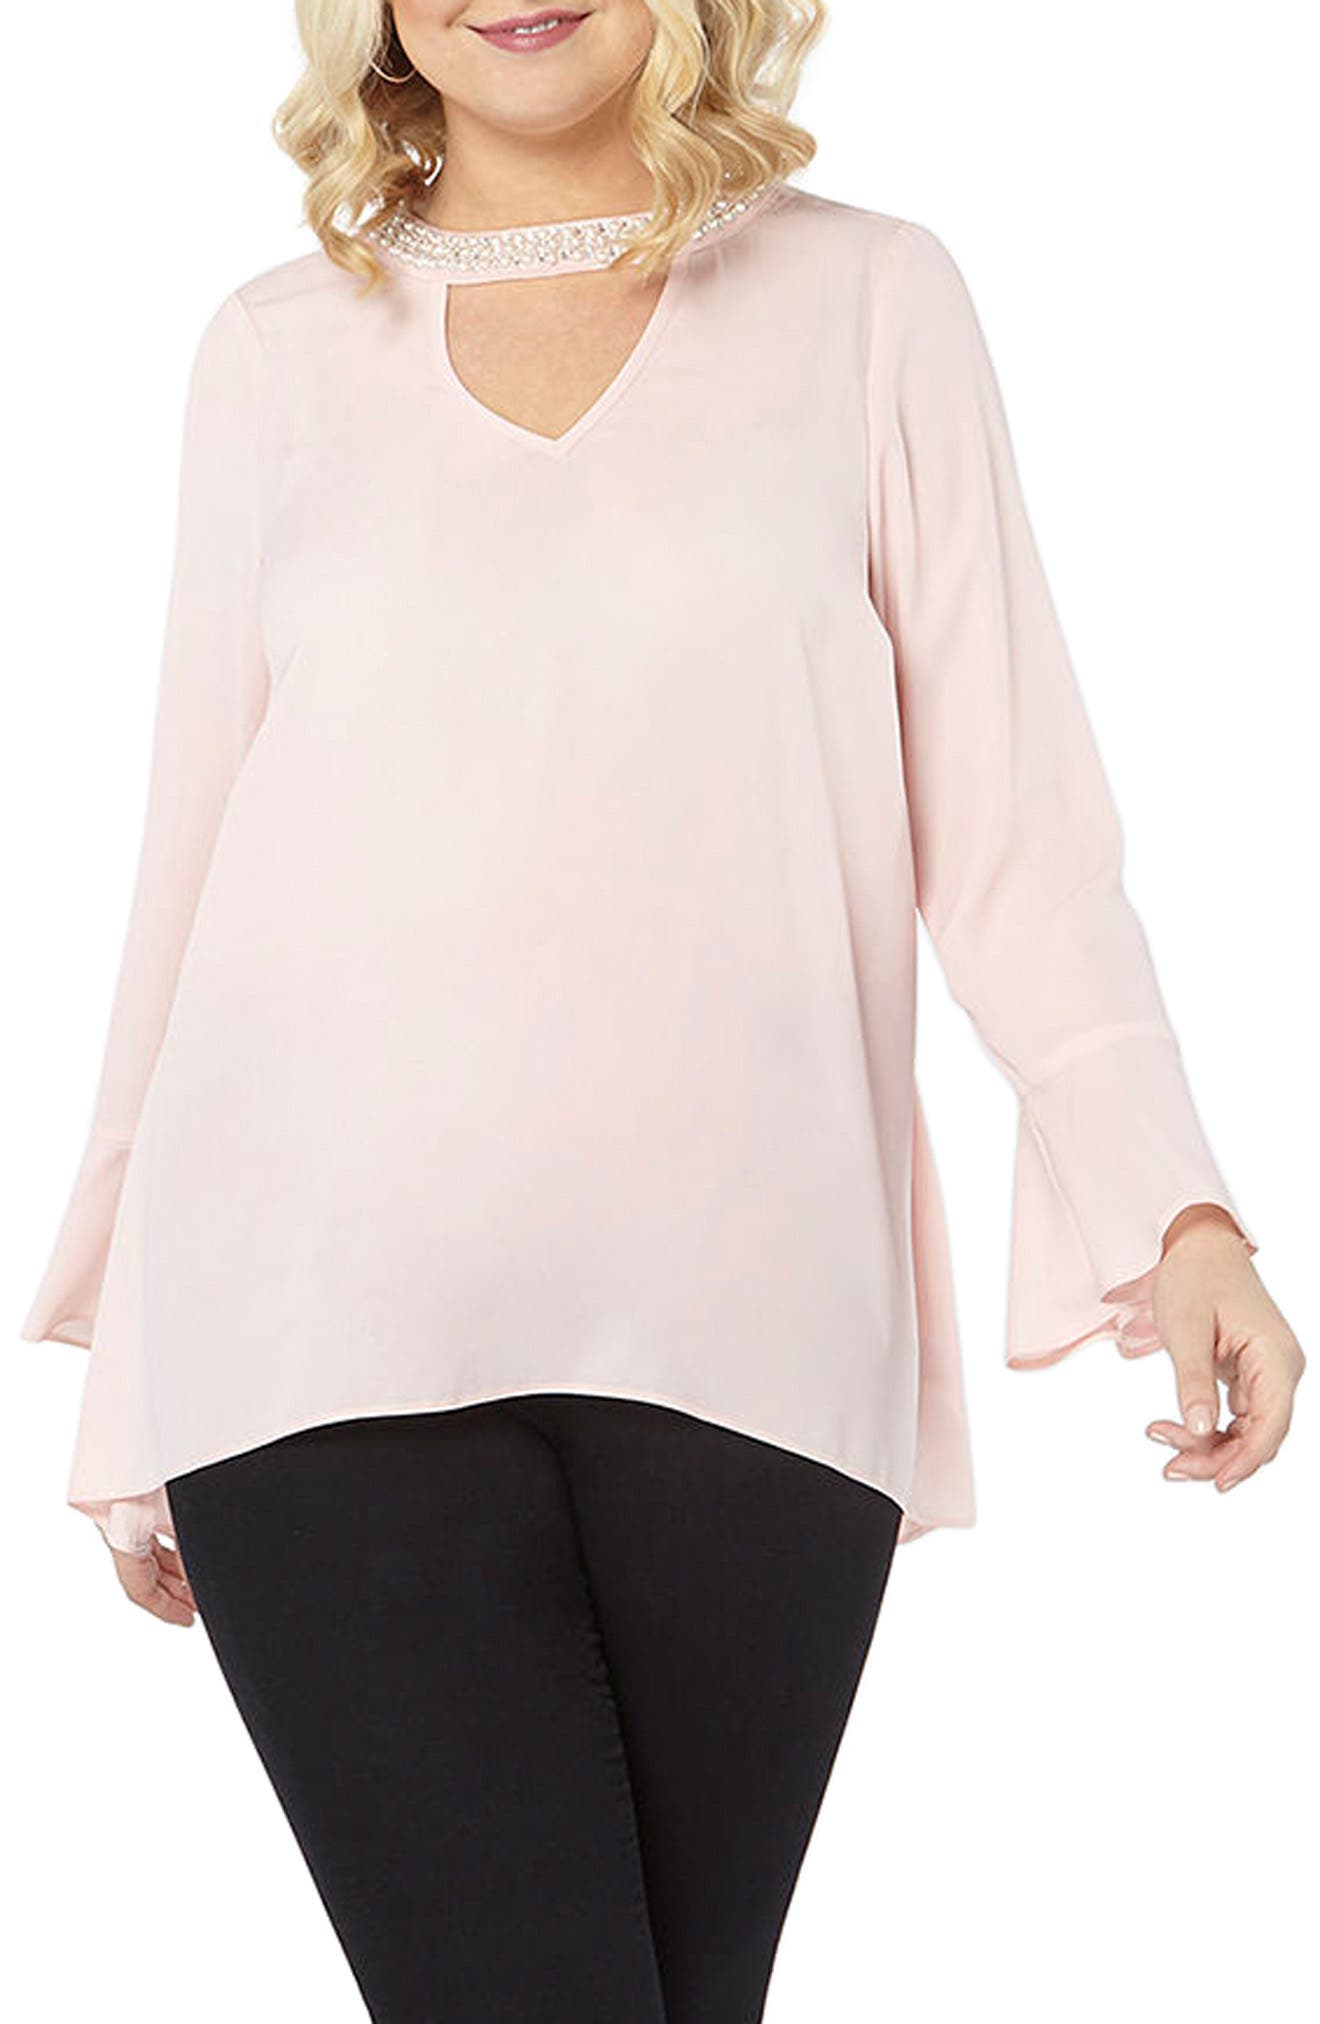 Alternate Image 1 Selected - Evans Bell Sleeve Pearly Choker Neck Top (Plus Size)